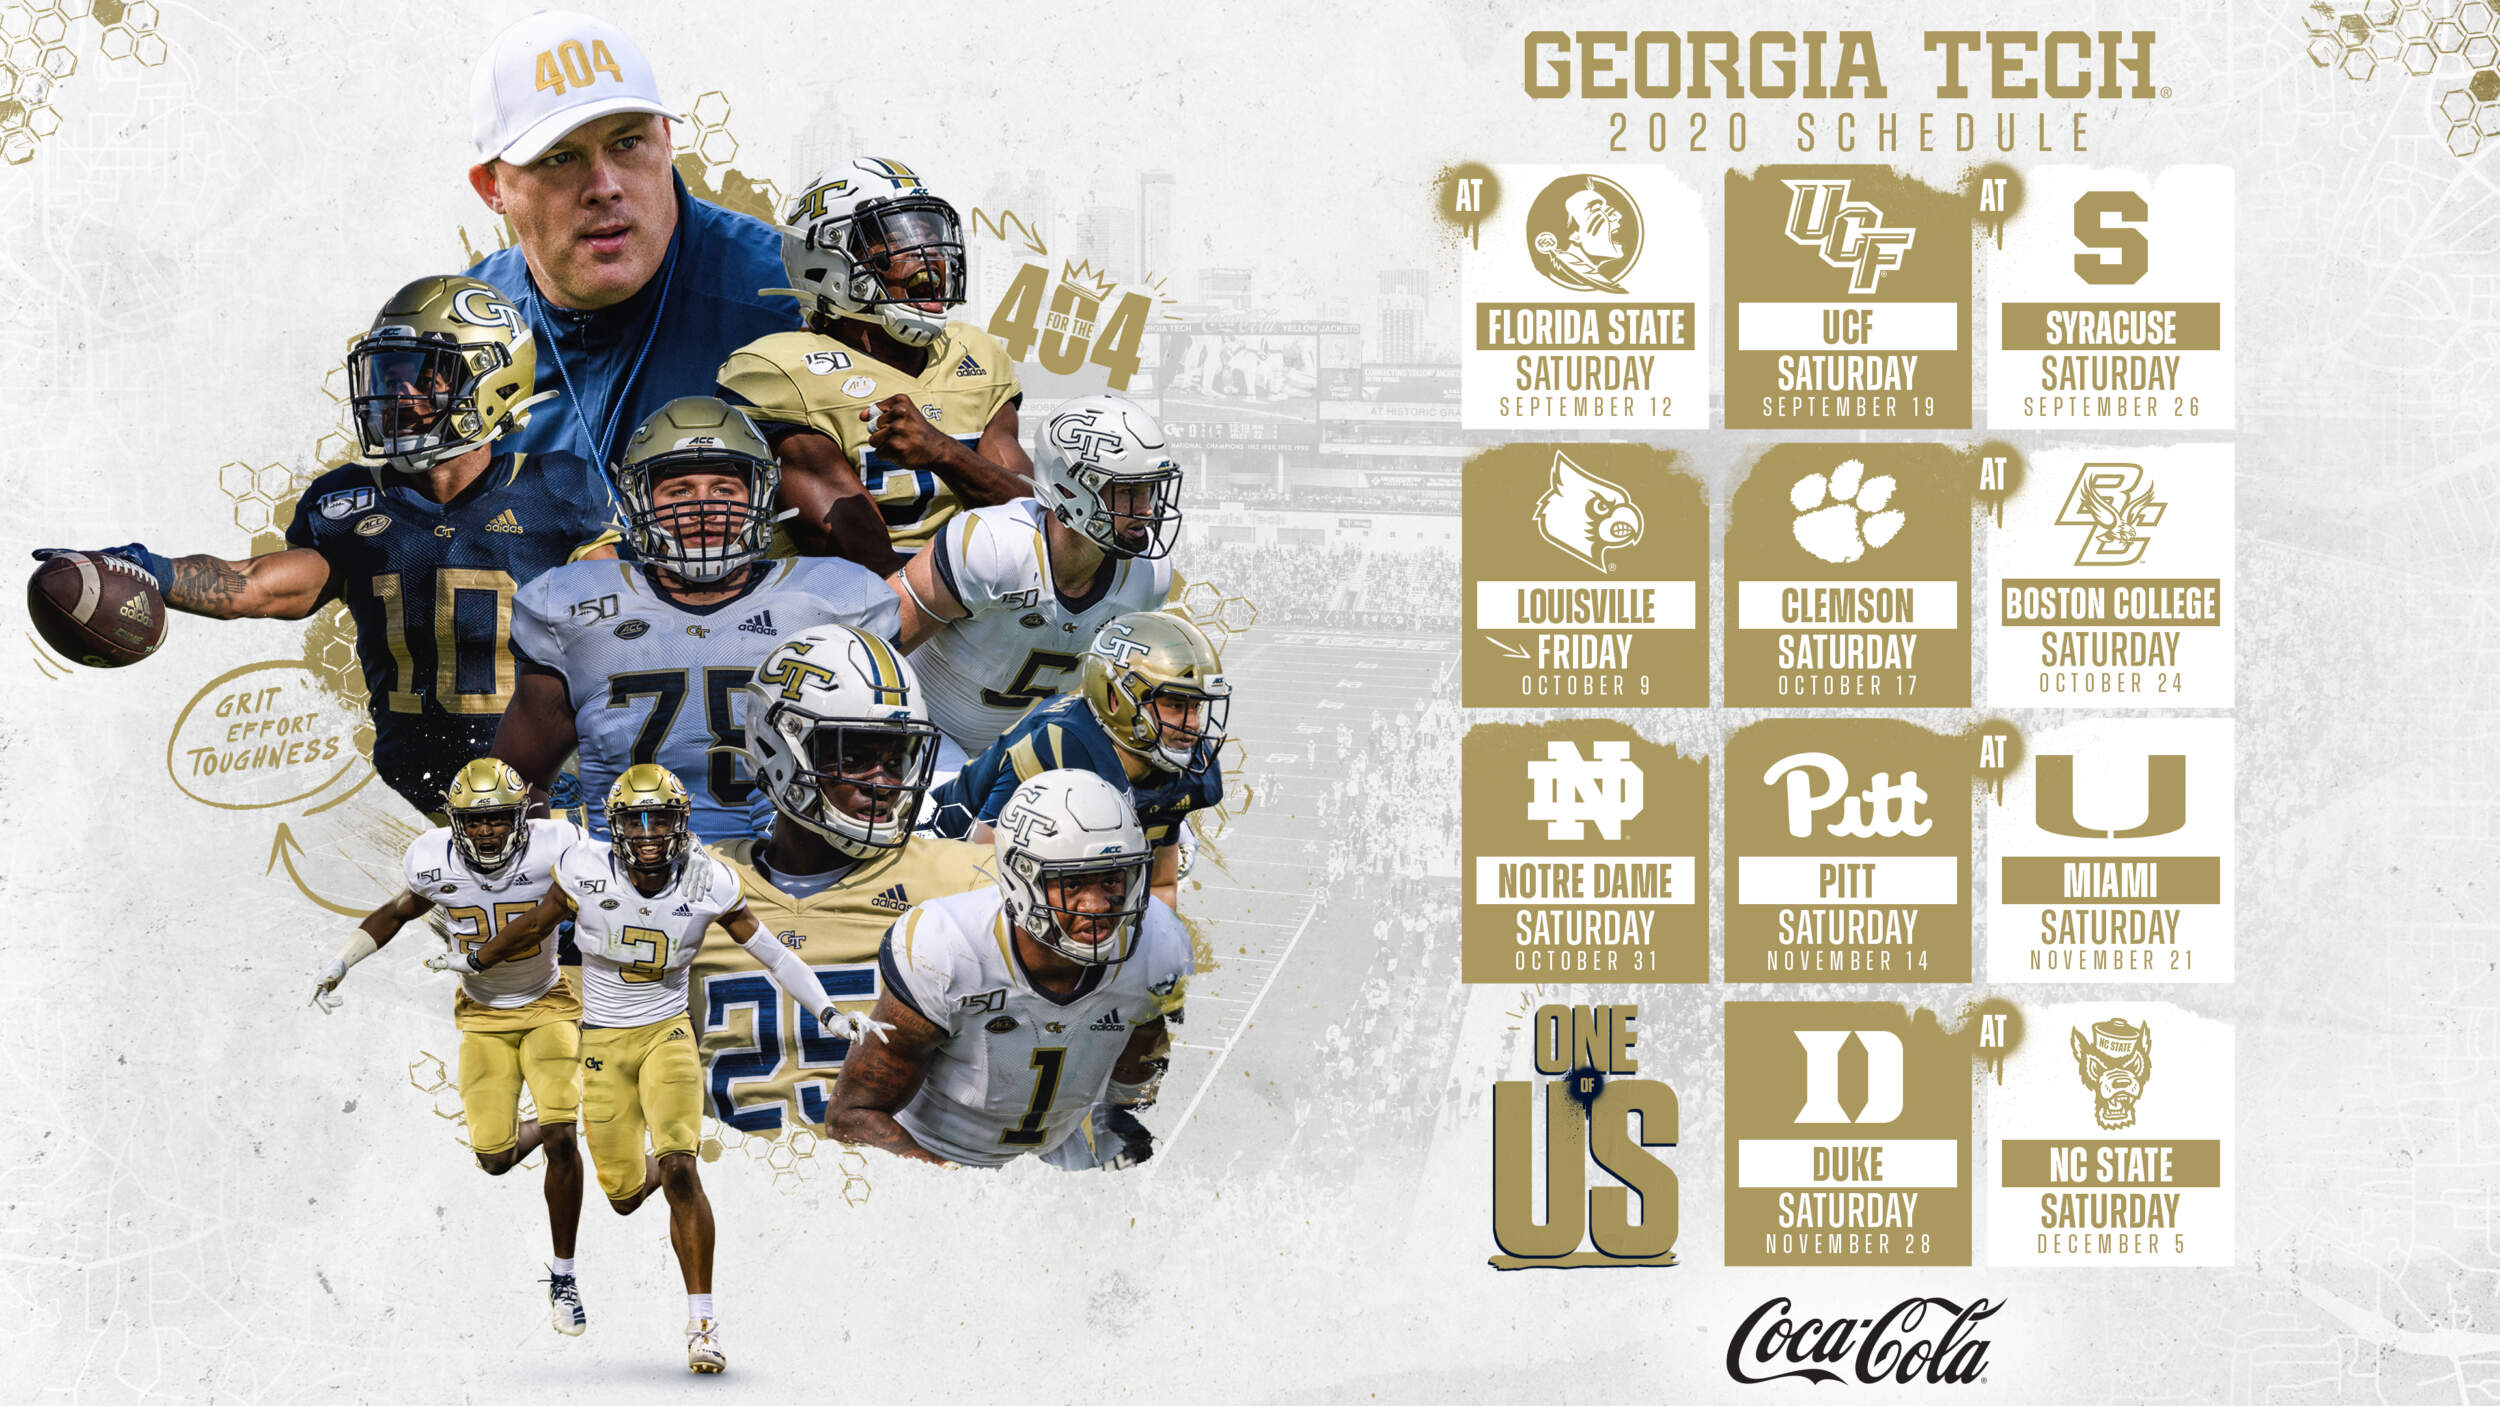 Georgia Tech S Revised Football Schedule Unveiled Football Georgia Tech Yellow Jackets